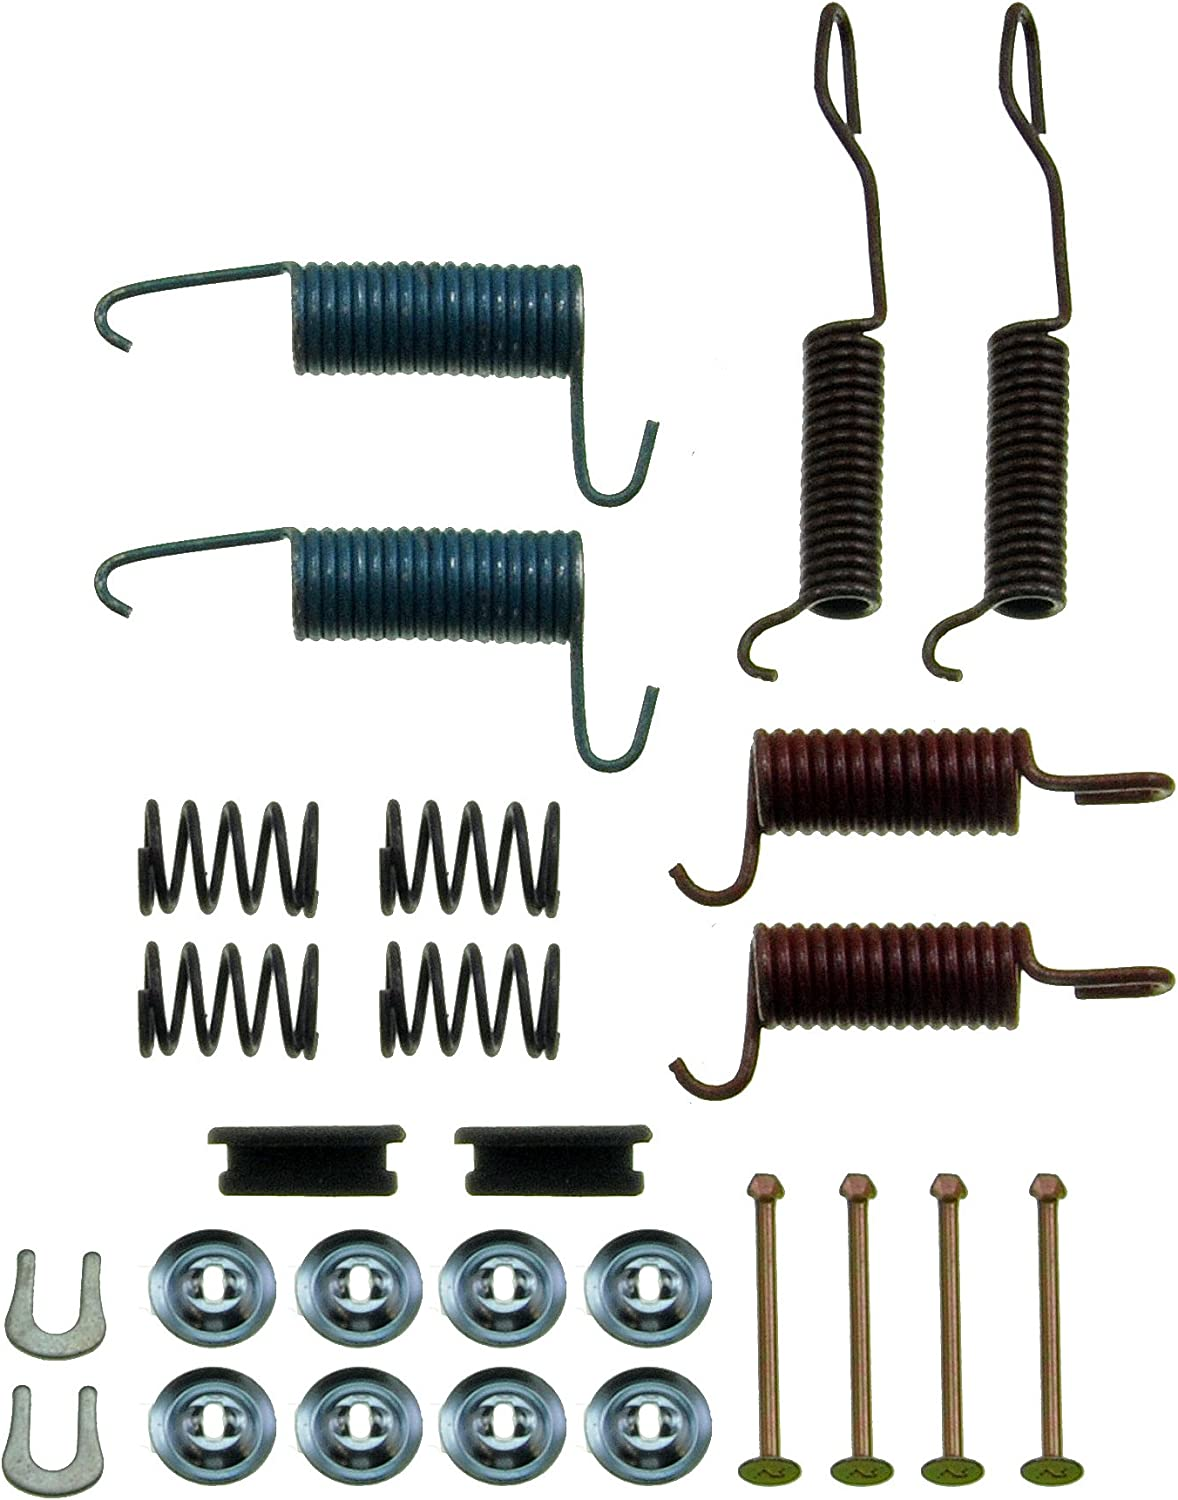 Dorman HW7144 Drum Brake Hardware Kit